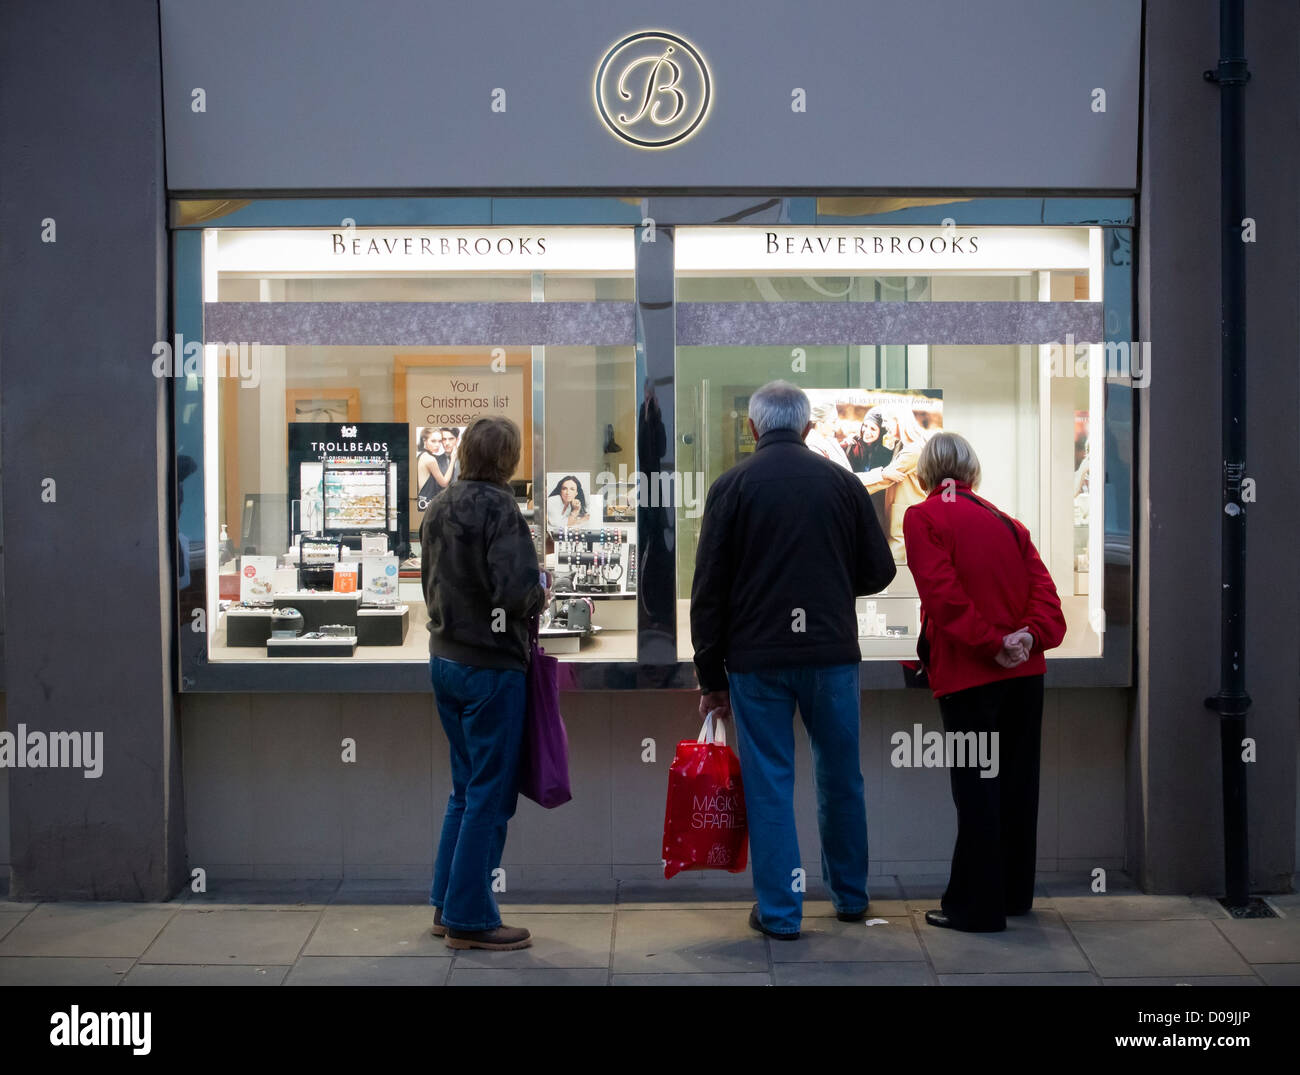 2557f53d513 Beaverbrooks Jewellers Window Display Whitefriars Shopping Centre  Canterbury England - Stock Image